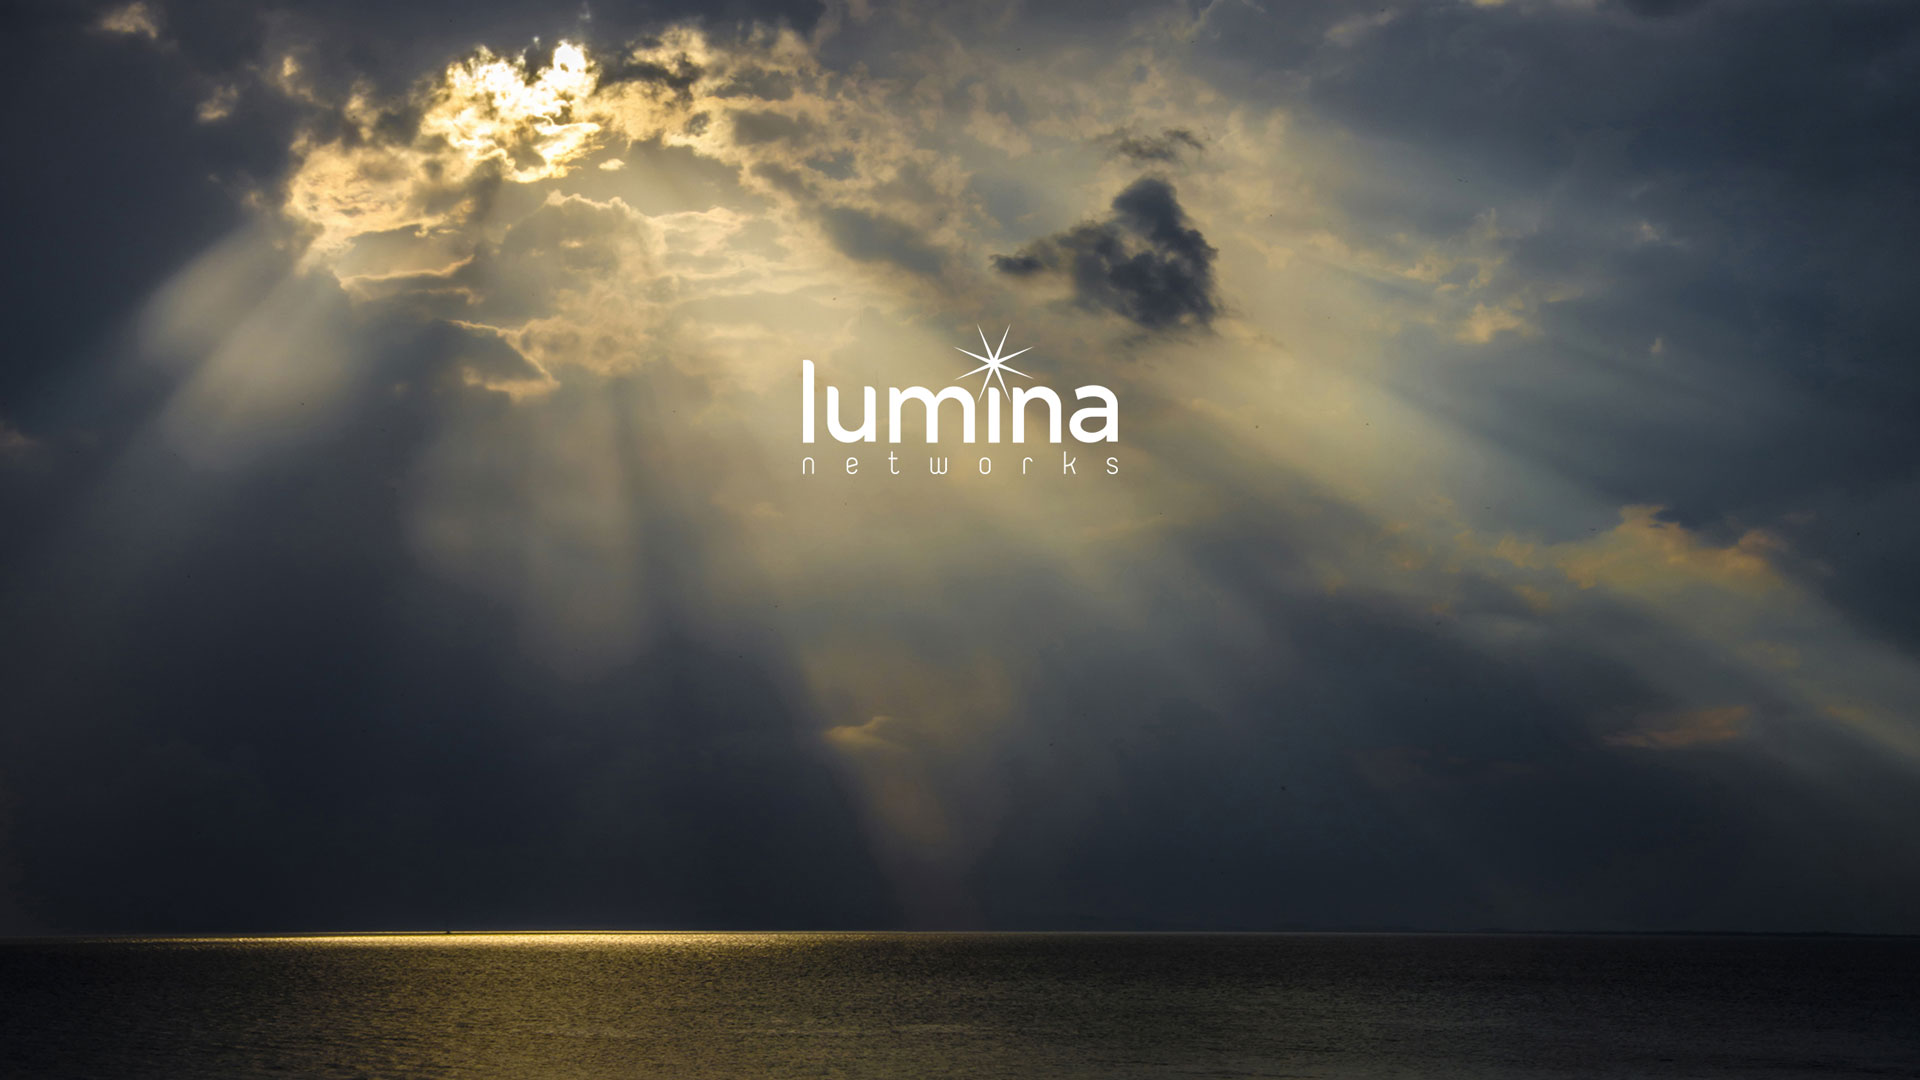 Lumina press & content strategy